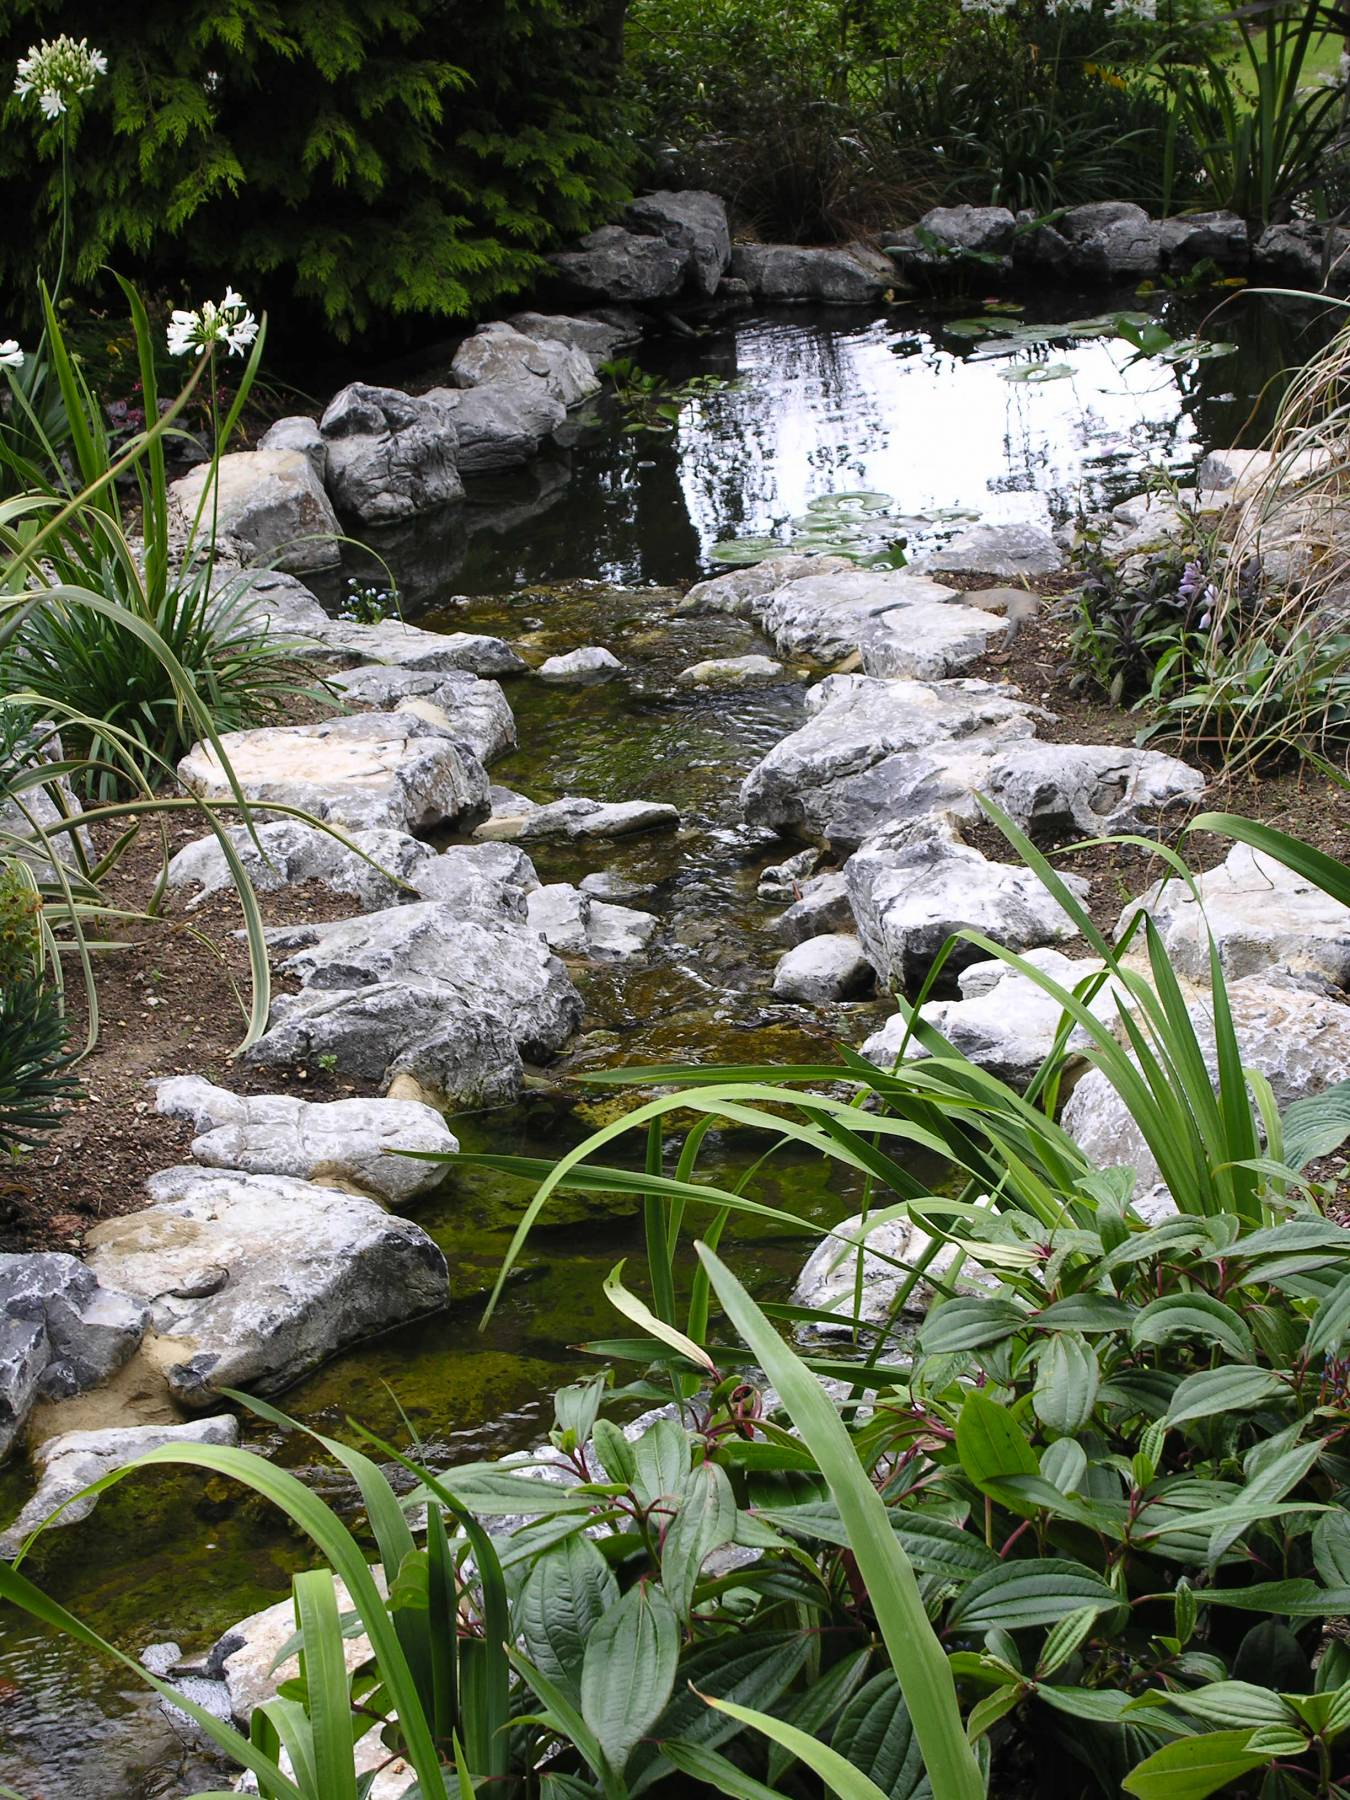 A natural pond and stream